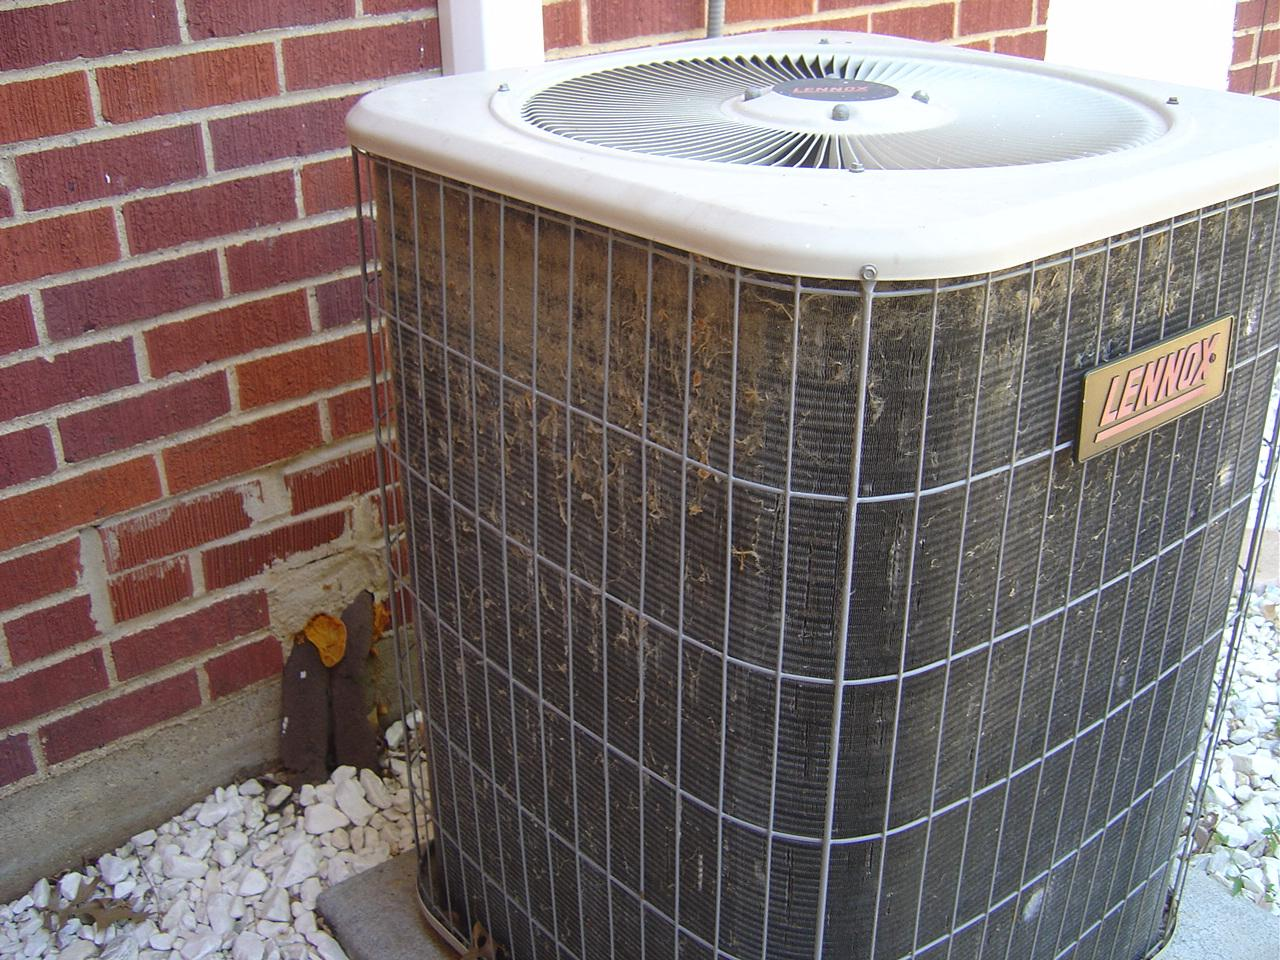 #6C433D How To Clean Central Air Conditioning Condenser Coils Best 2113 Condenser For Ac Unit photos with 1280x960 px on helpvideos.info - Air Conditioners, Air Coolers and more